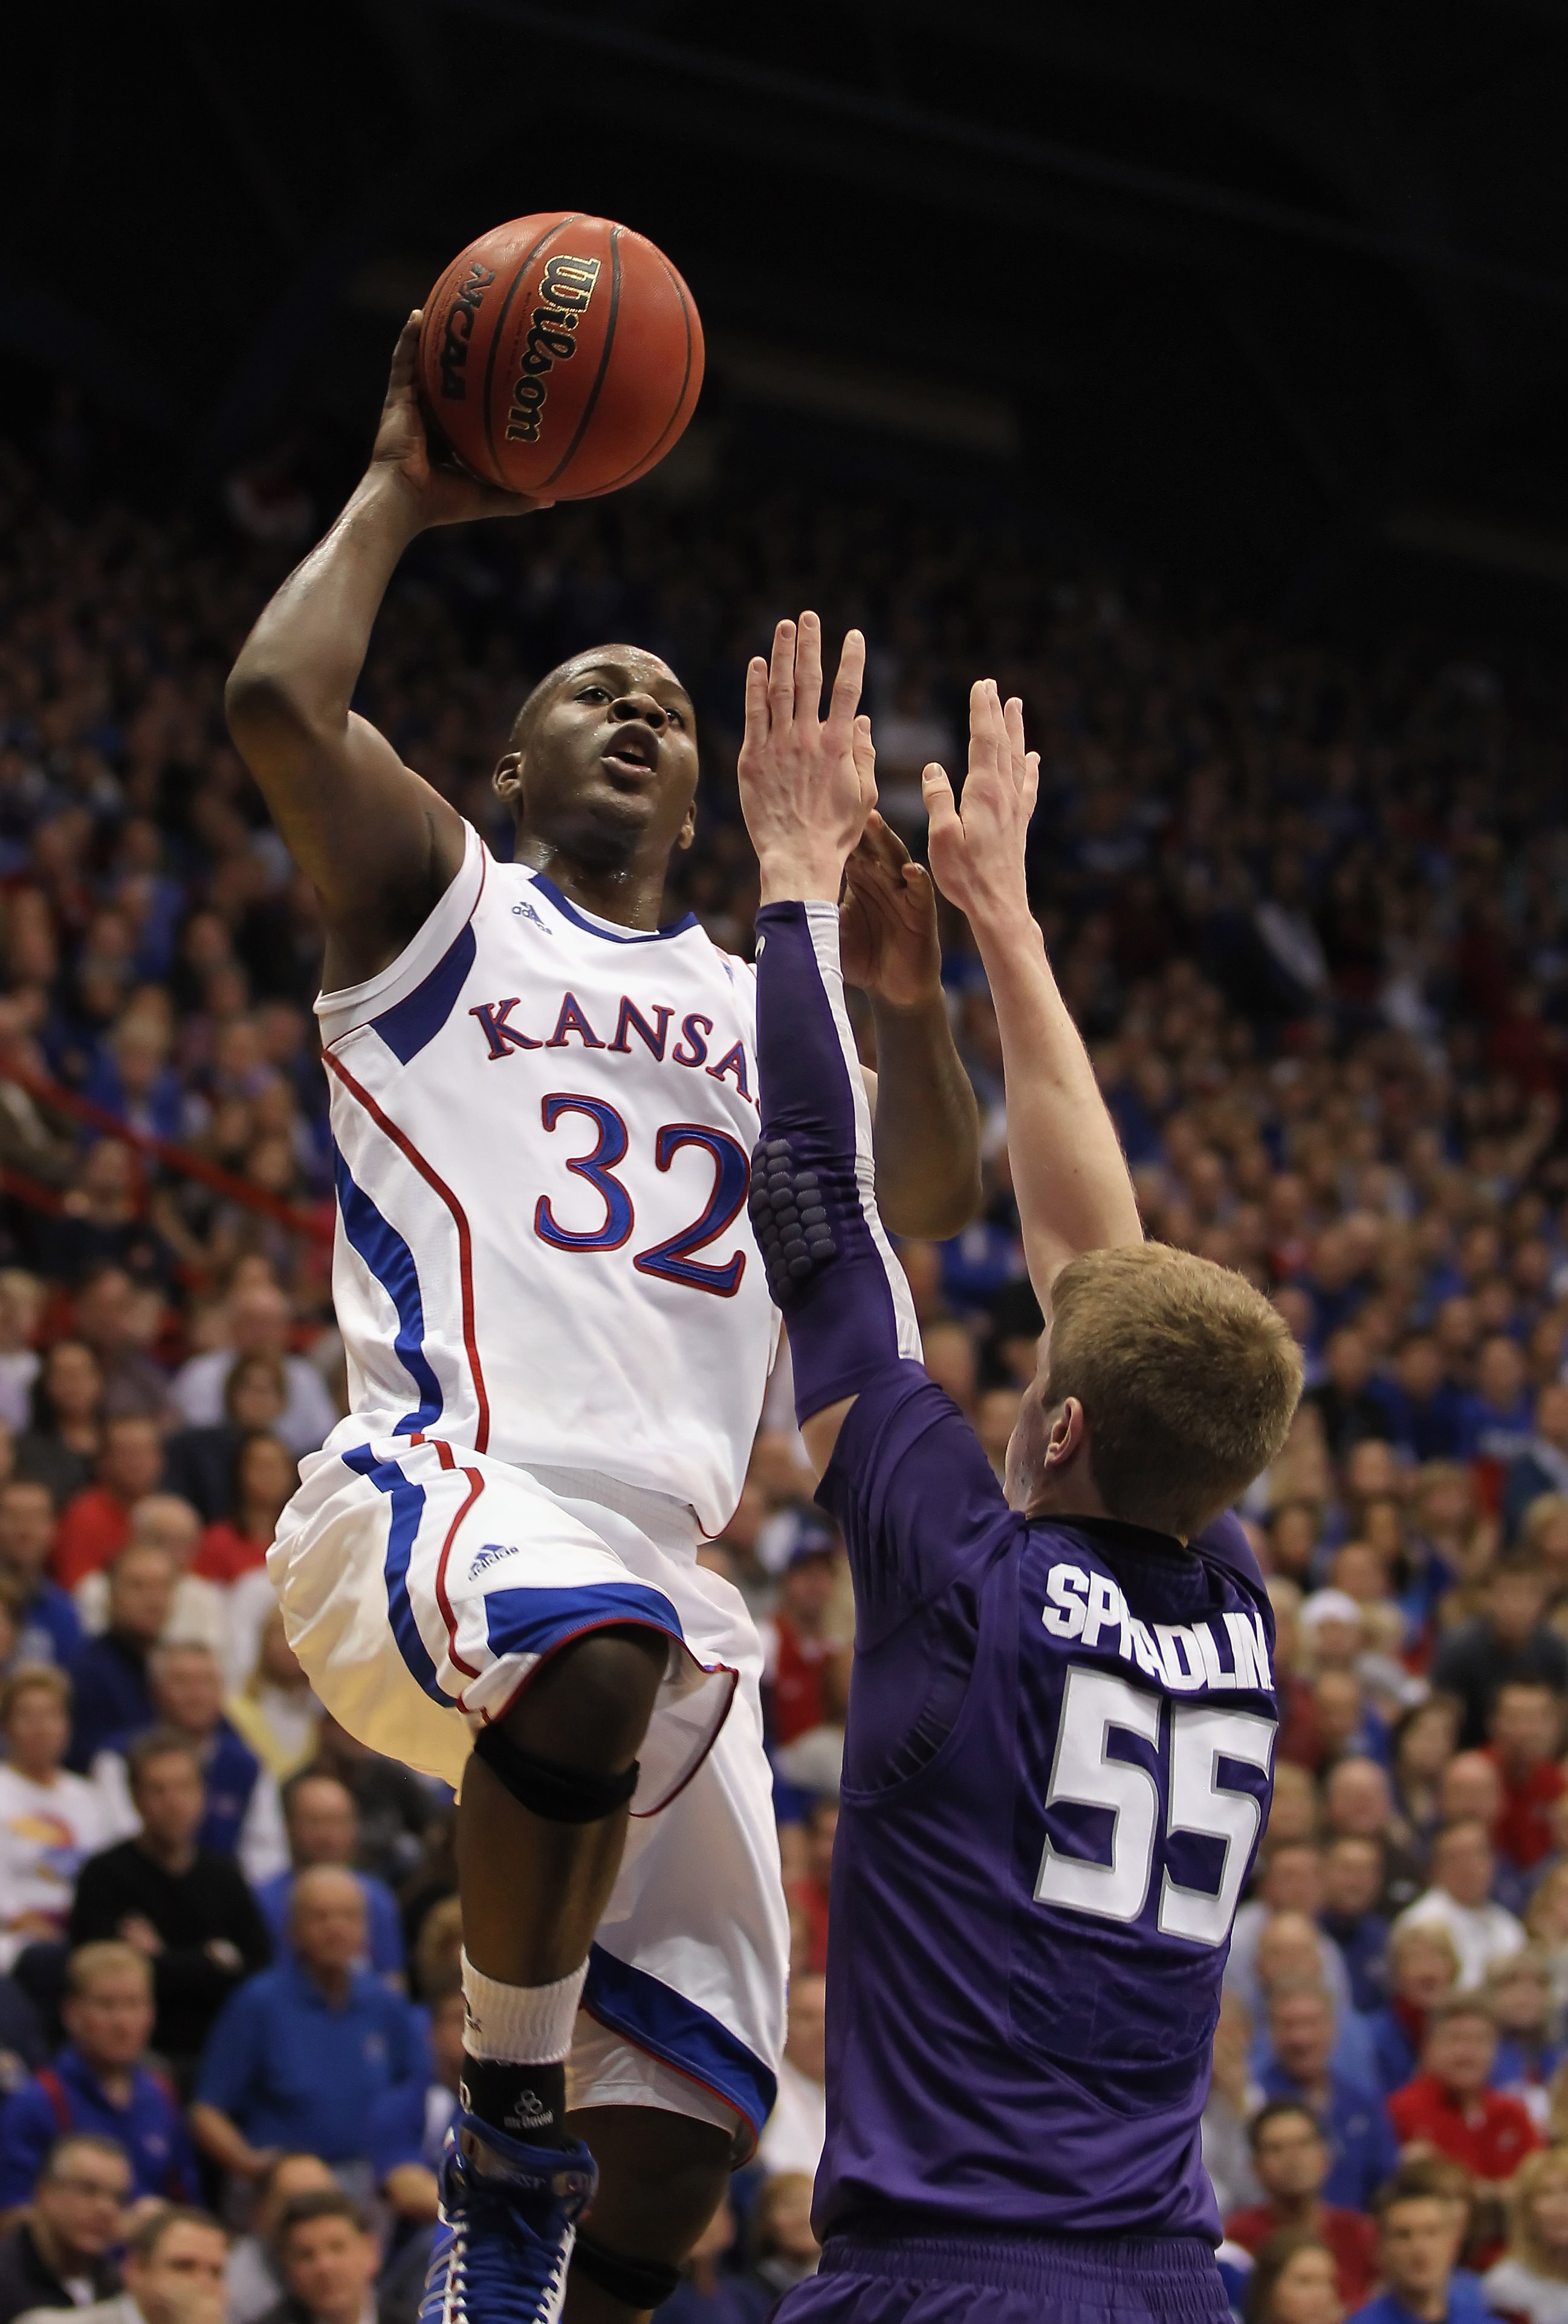 LAWRENCE, KS - JANUARY 29:  Josh Selby #32 of the Kansas Jayhawks shoots over Will Spradling #55 of the Kansas State Wildcats for a rebound during the game on January 29, 2011 at Allen Fieldhouse in Lawrence, Kansas.  (Photo by Jamie Squire/Getty Images)